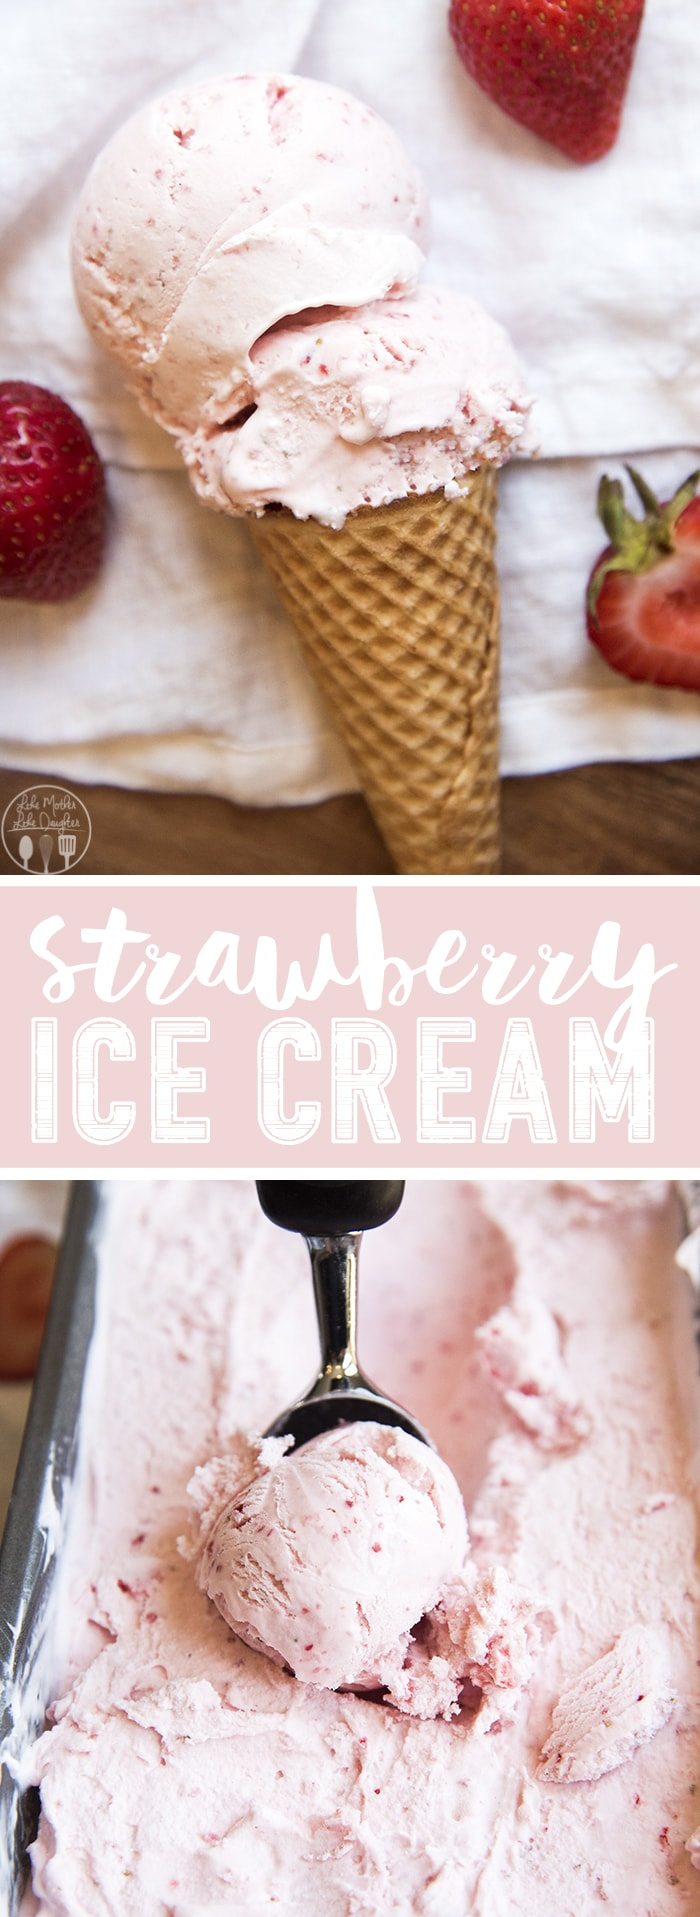 Homemade strawberry ice cream is so rich and creamy, with an amazing fresh strawberry taste. Its egg and cook free, and so easy to make!